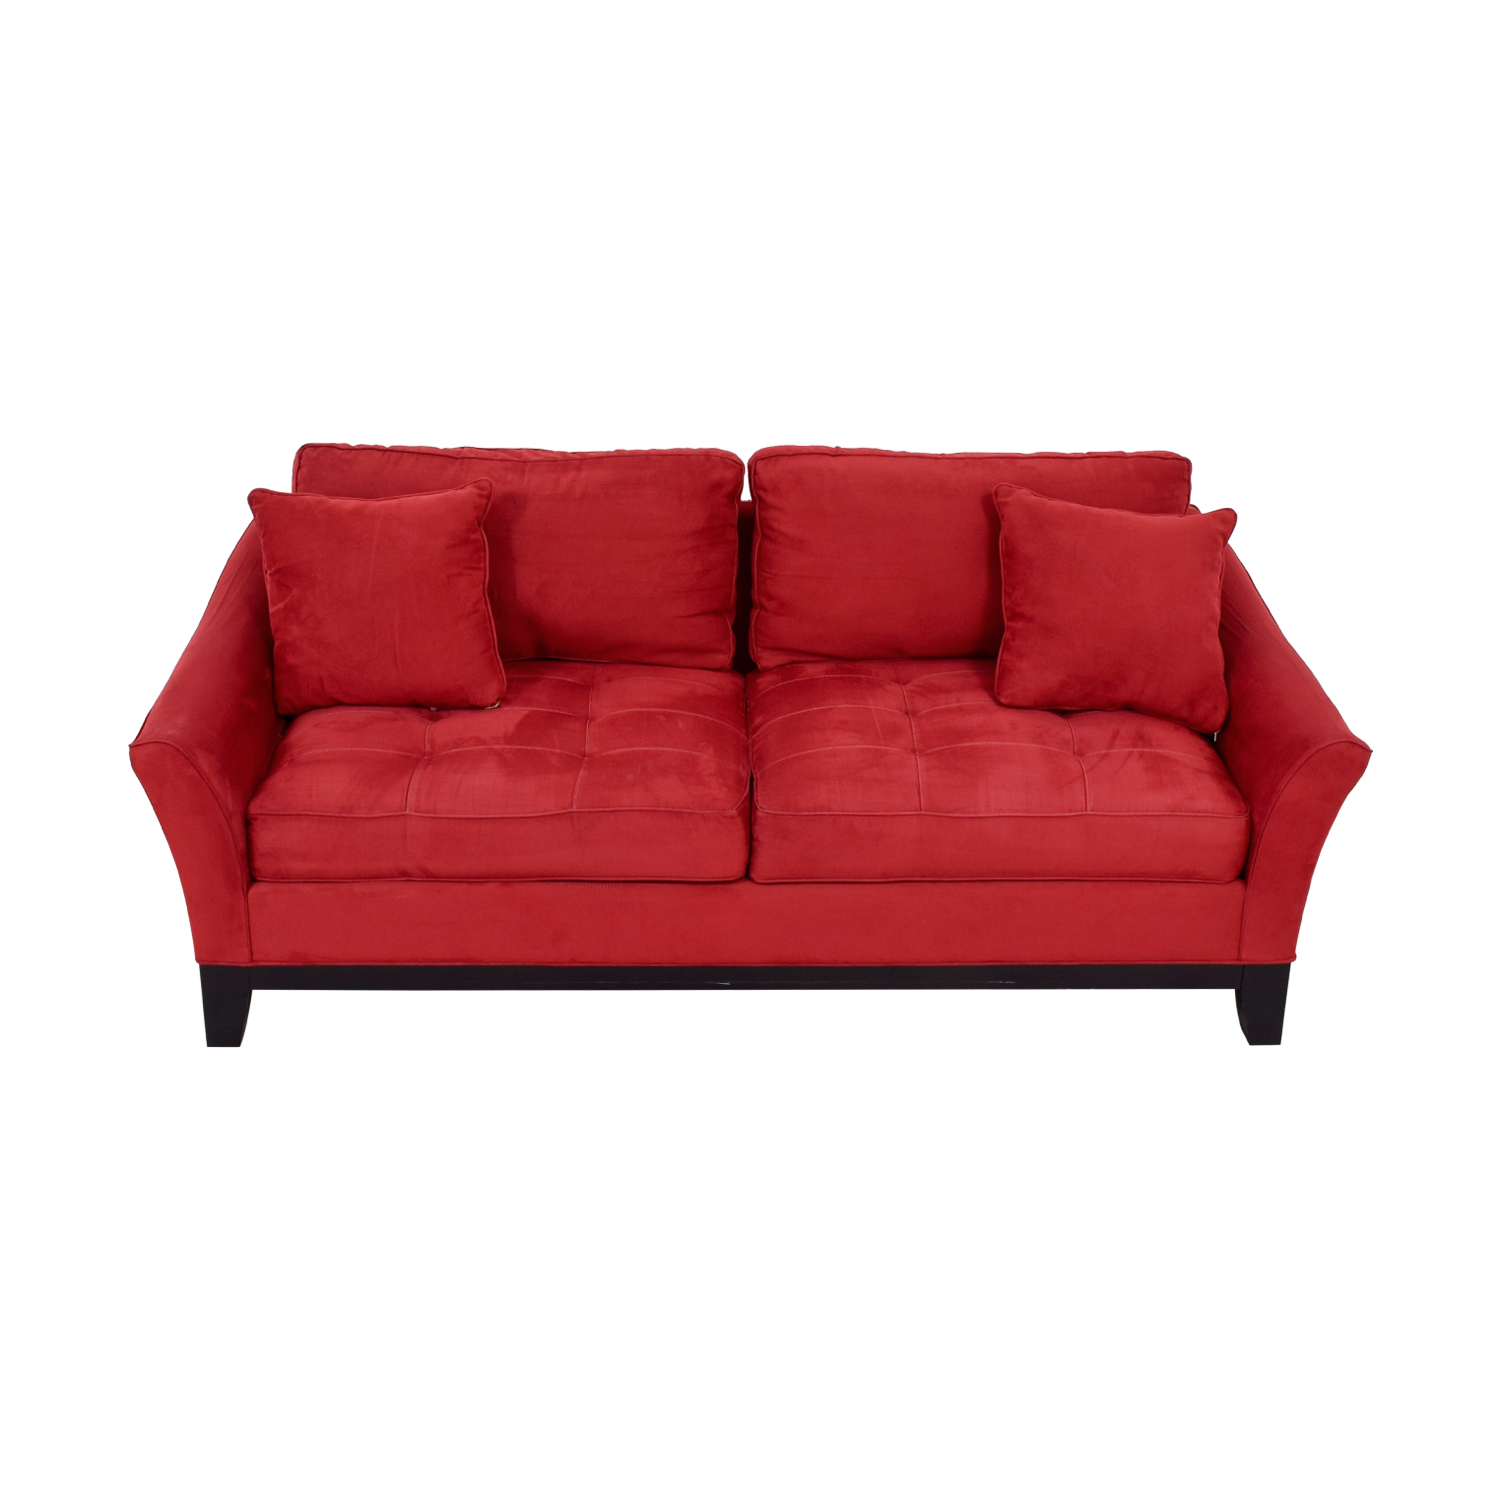 Raymour & Flanigan Raymour & Flanigan Rory Red Thufted Microfiber Two-Cushion Sofa nyc